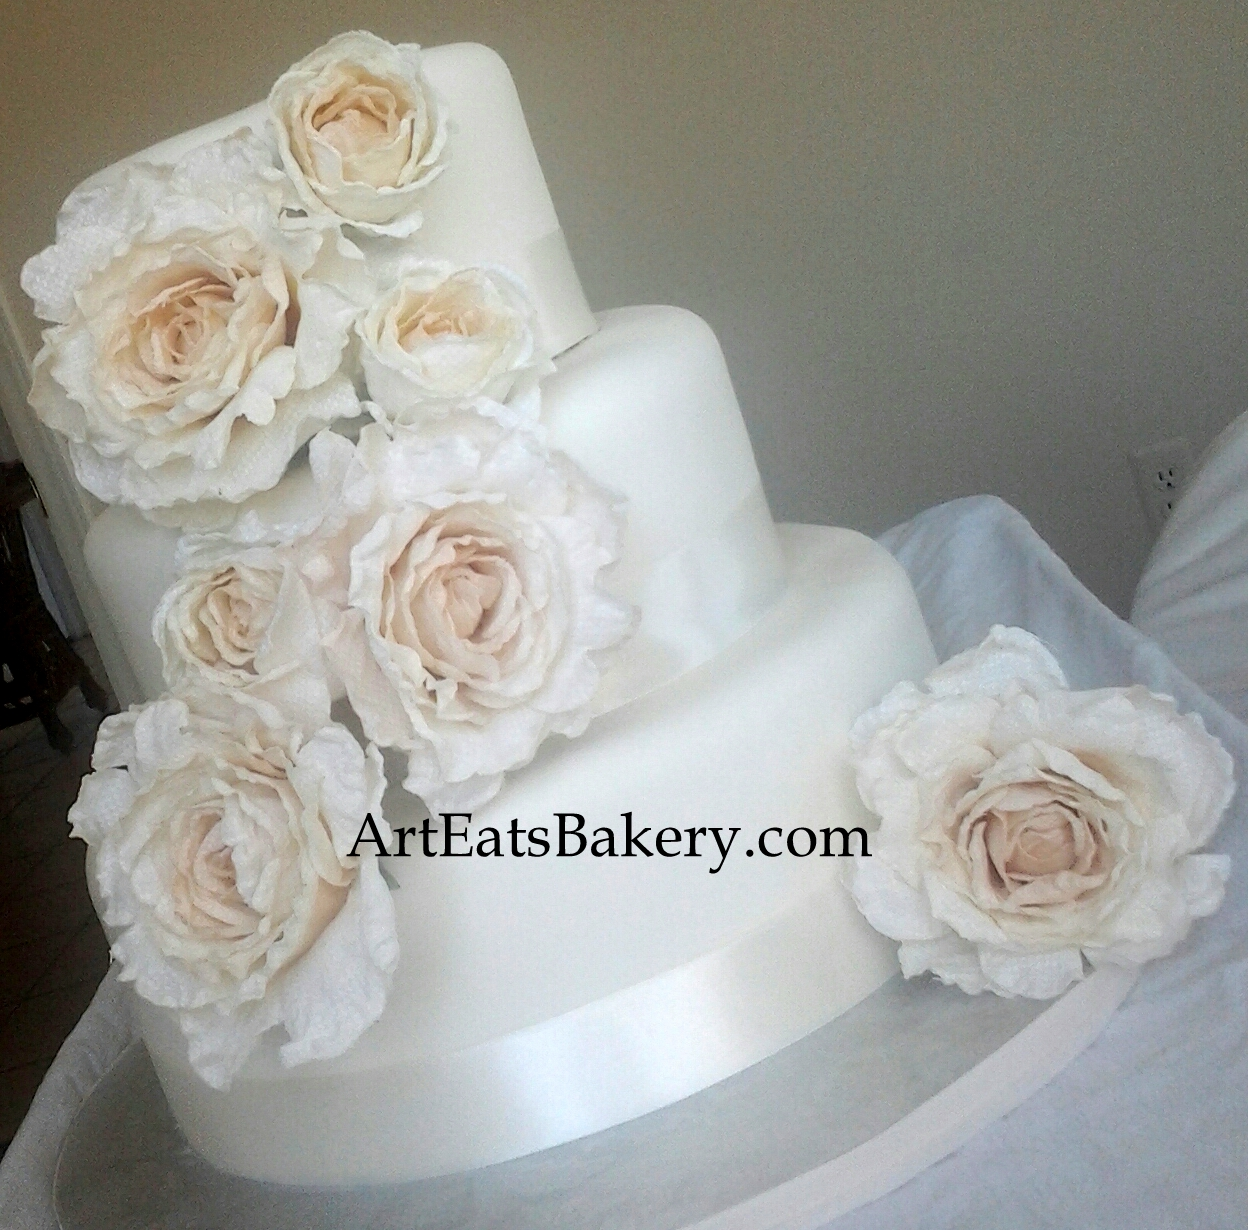 Three tier fondant modern unique wedding cake design with silk roses and ribbons.jpg